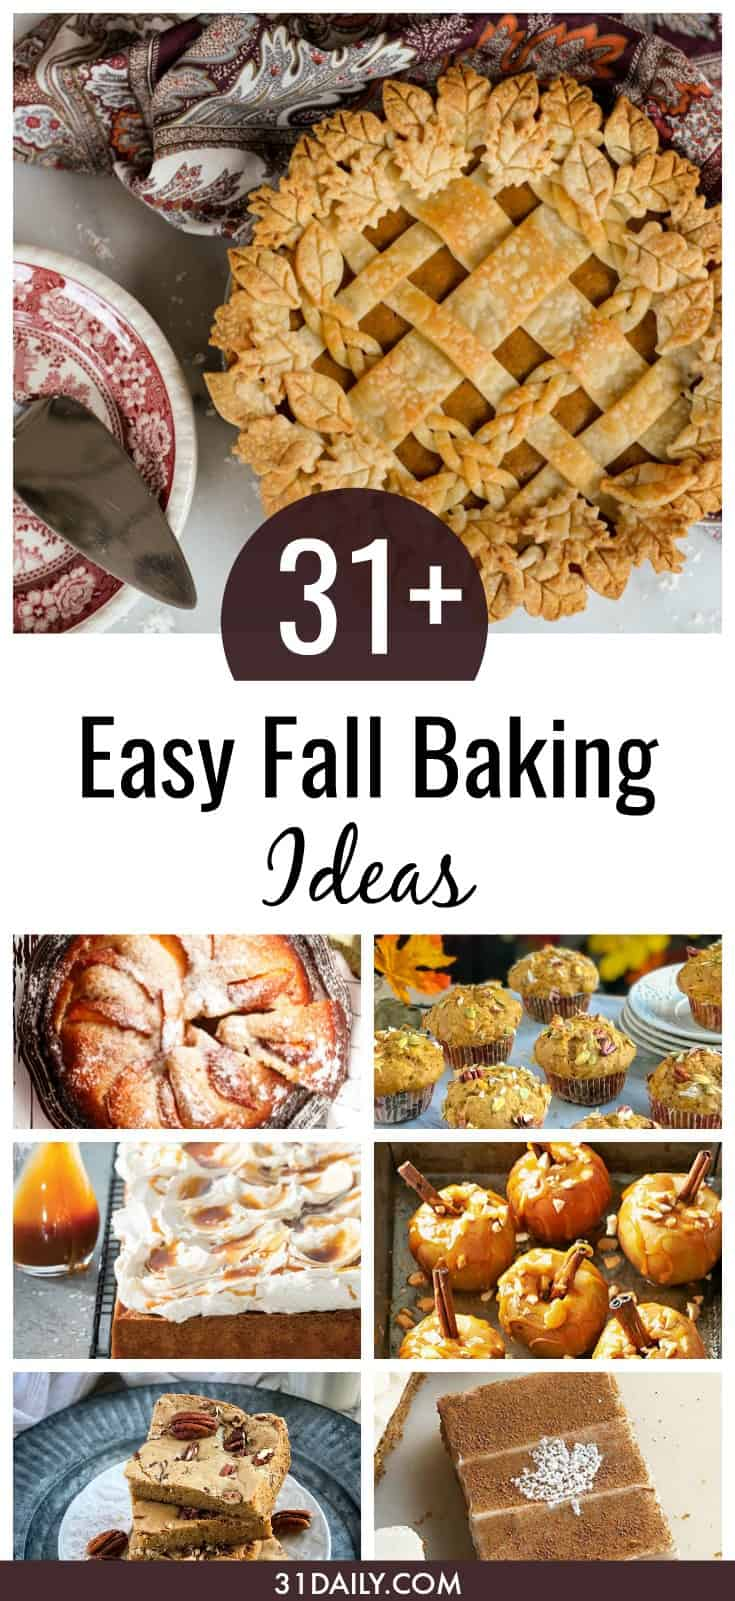 31+ Easy Fall Baking Recipes to Make All Month | 31Daily.com